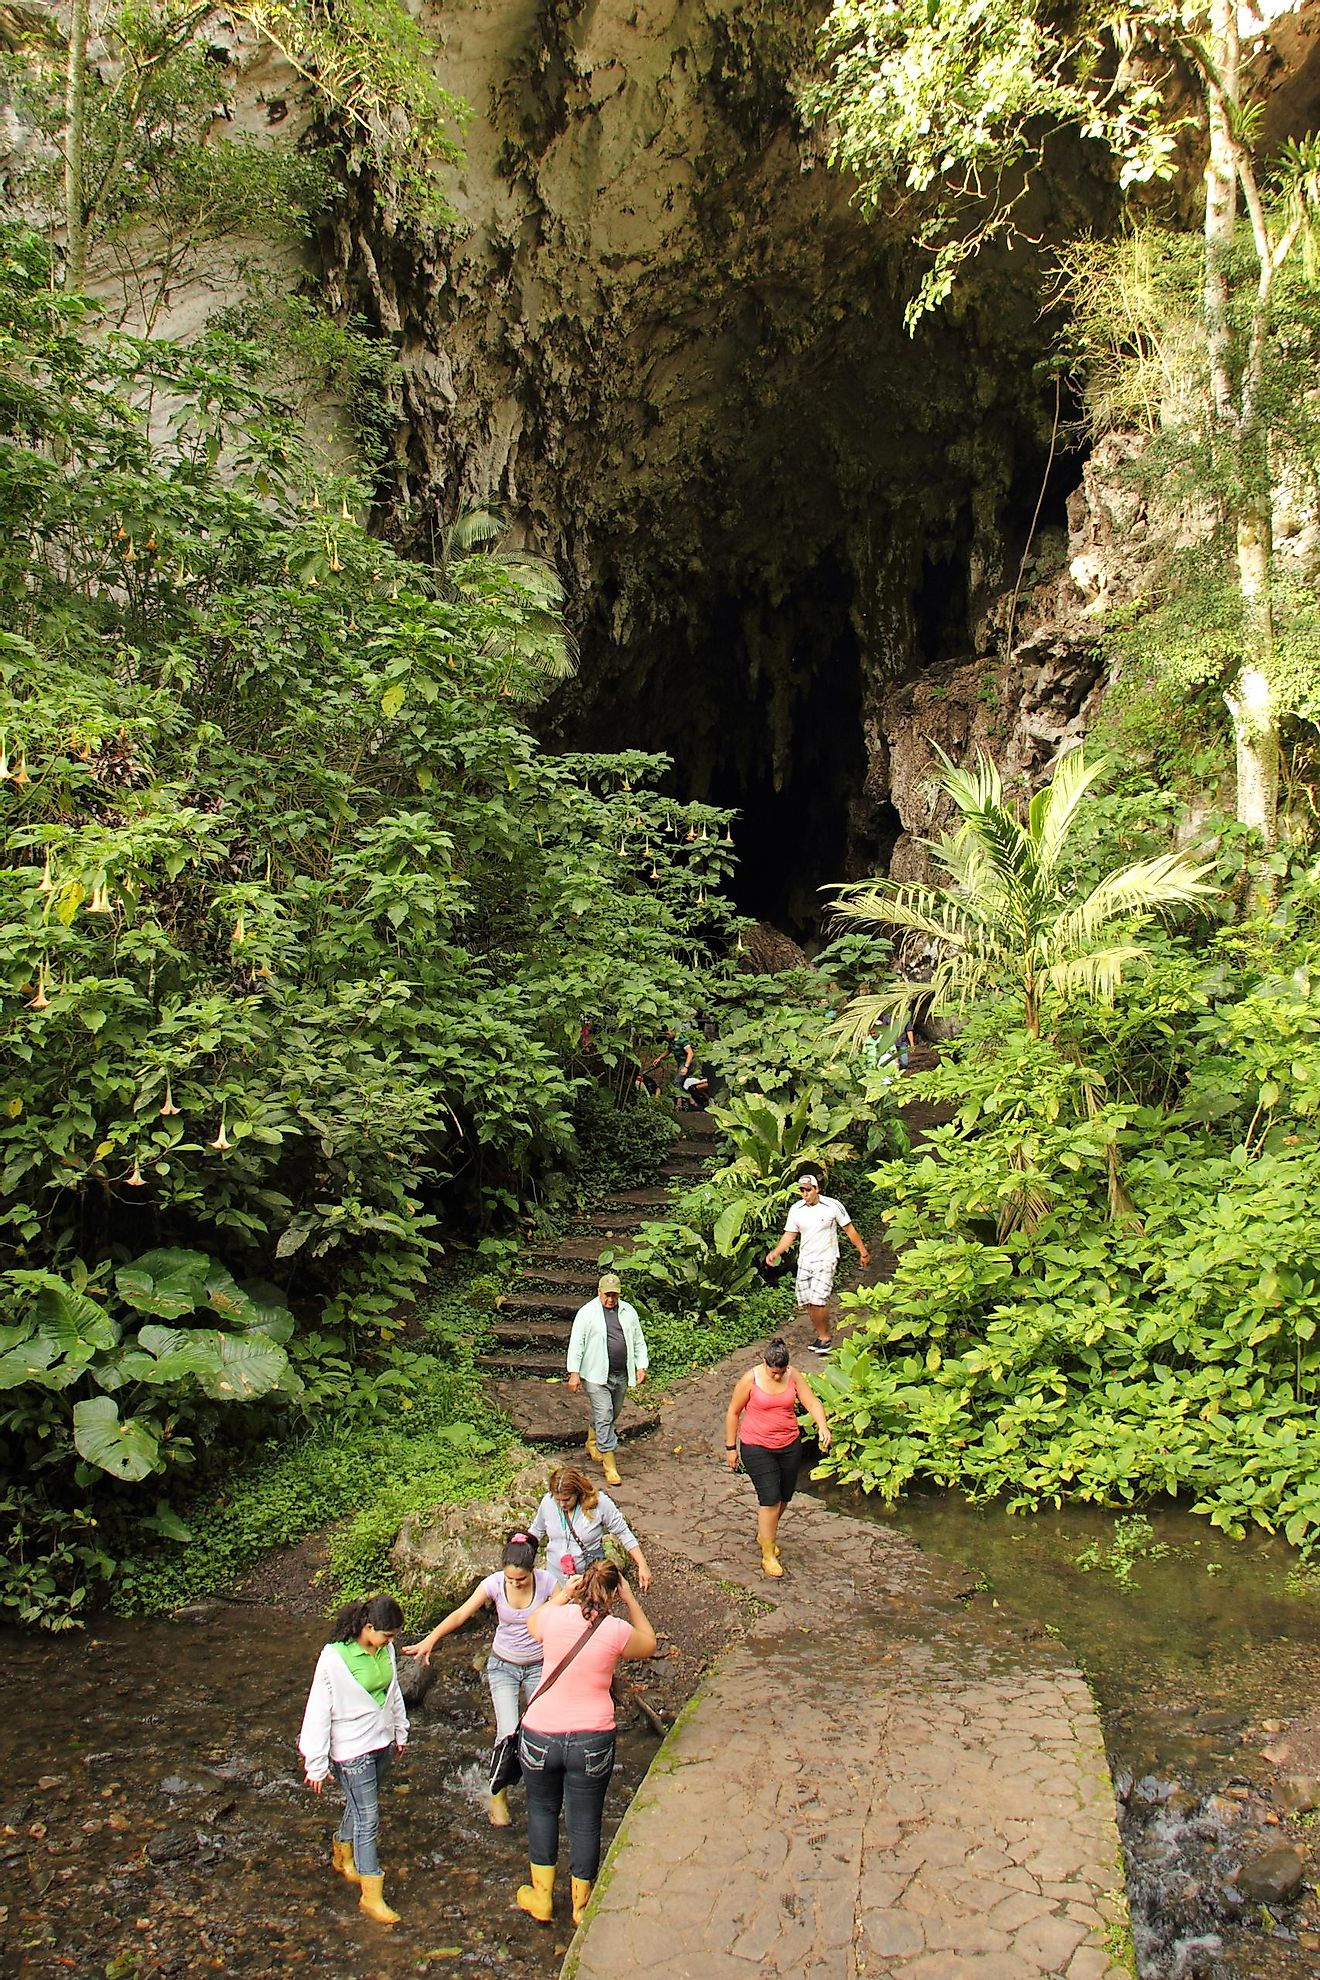 Entrance to Guacharo Cave and National Park located in Caripe, Monagas. Image credit: Edgloris Marys/Shutterstock.com